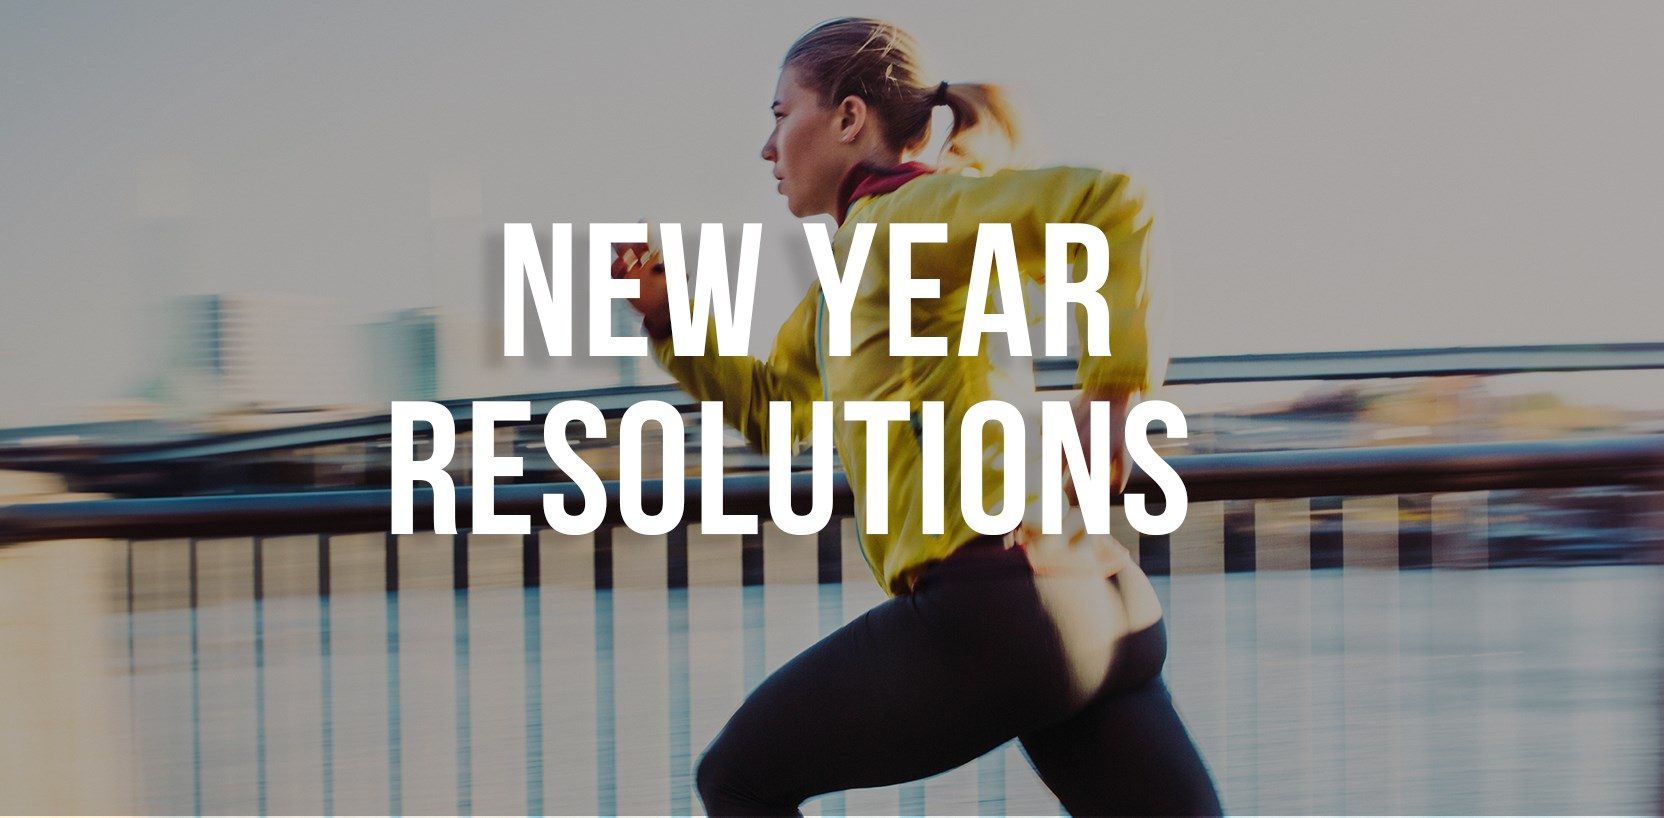 CAB17616_TEAMSPORT_WEB_BANNER_NEW-YEAR-RESOLUTIONS_1664x917px_V1.jpg